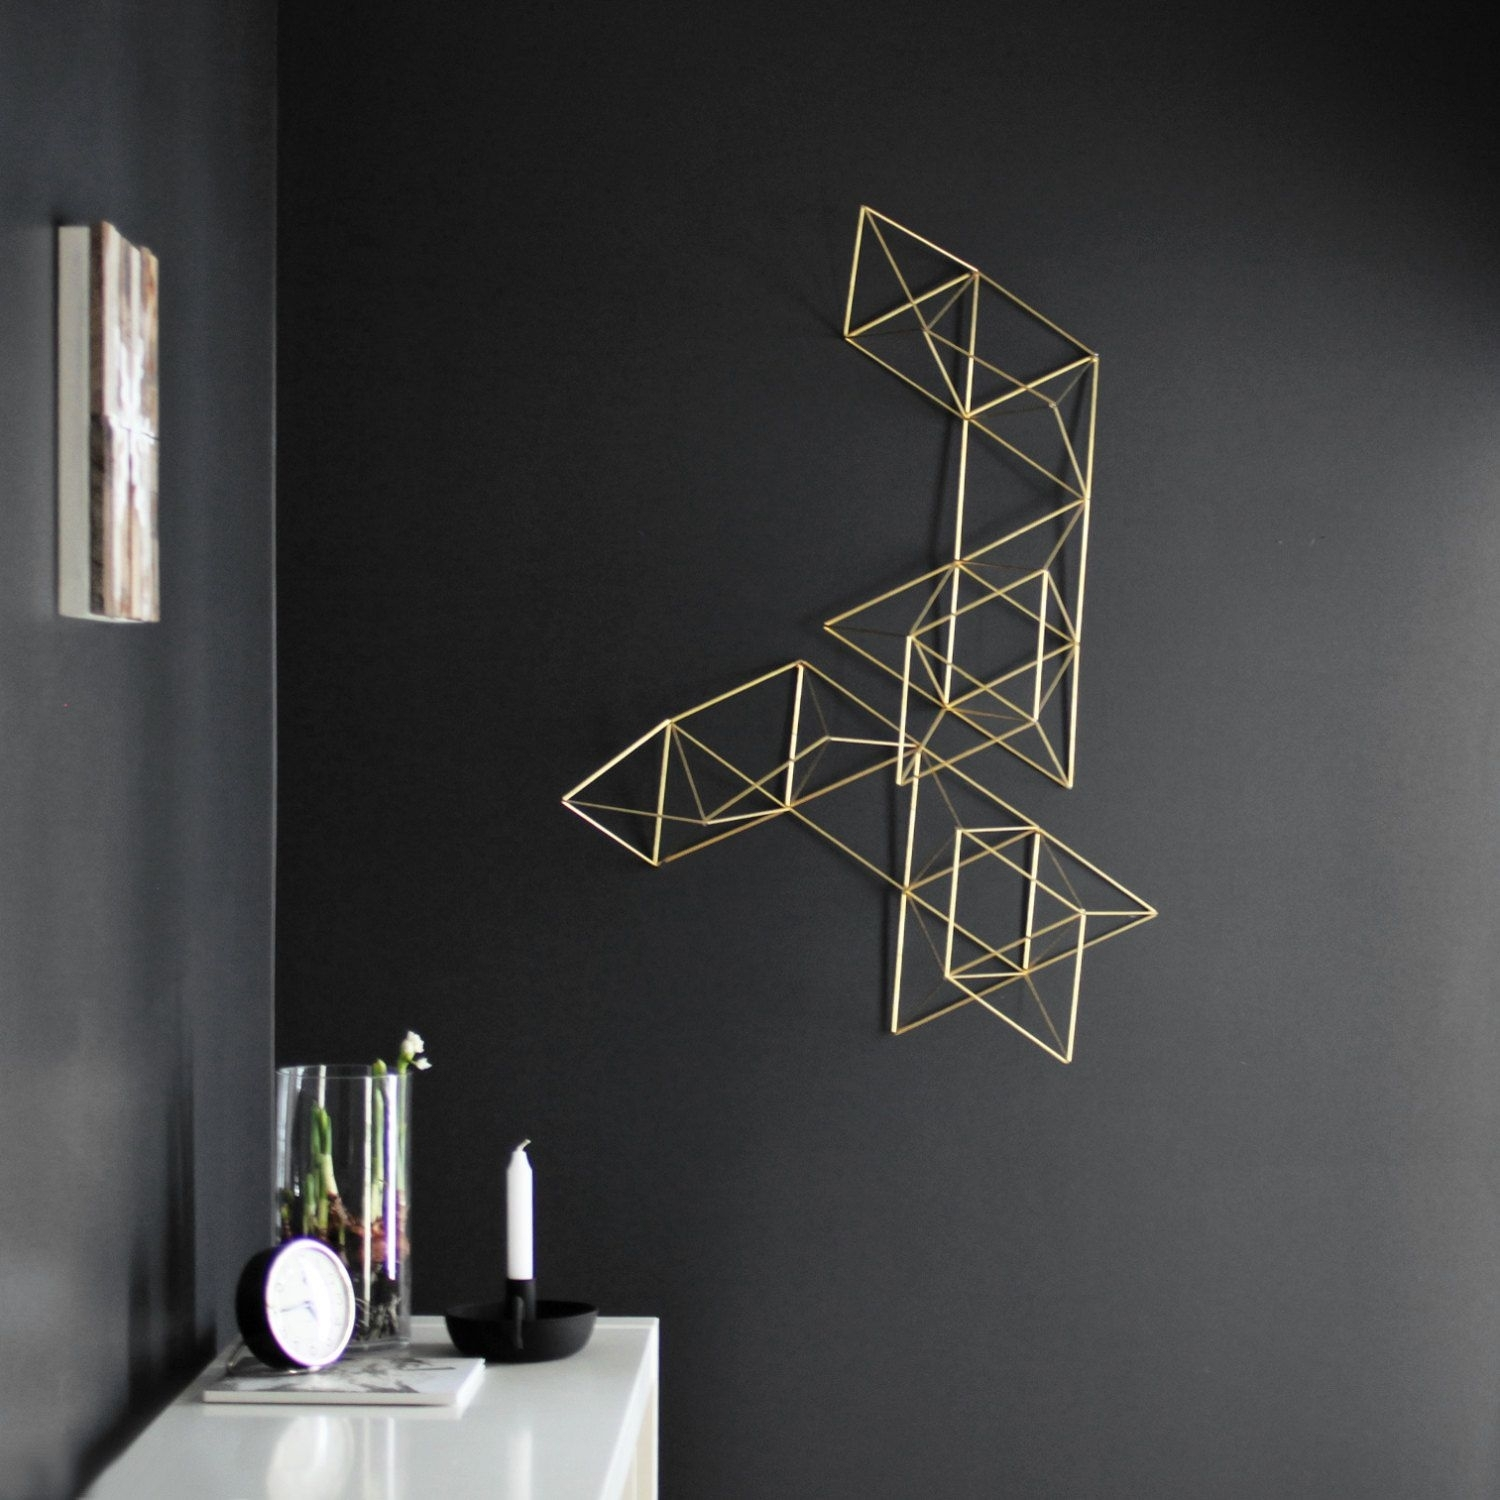 Lux – Large Abstract Wall Sculpture – Geometric Art – Himmeli Regarding 2018 Abstract Geometric Metal Wall Art (Gallery 3 of 20)